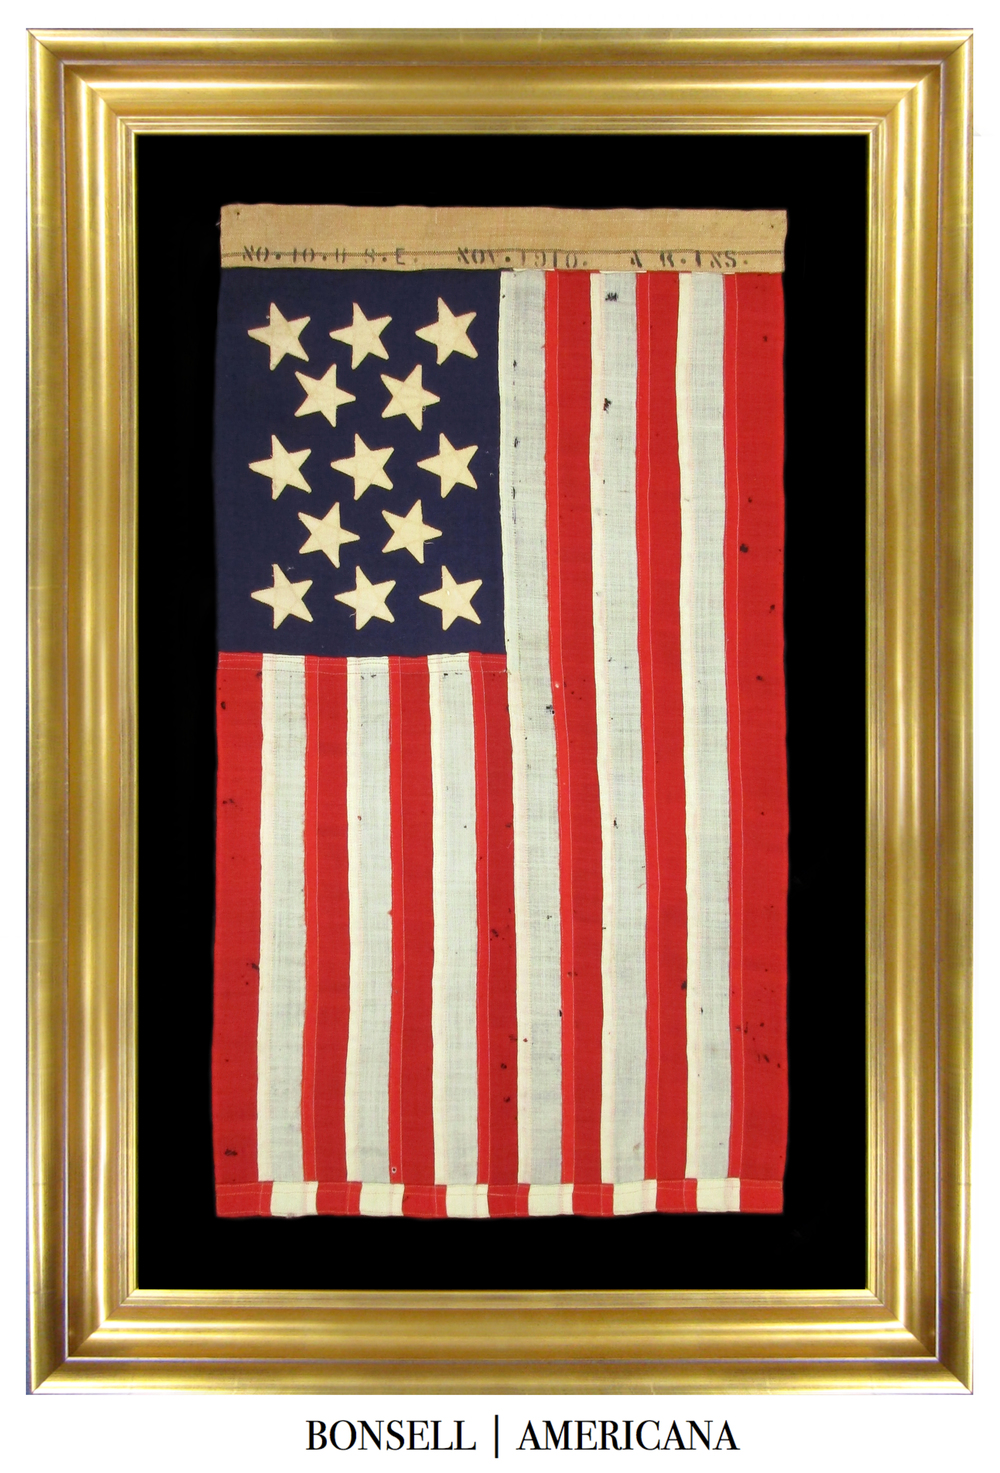 13 Star Antique Ensign